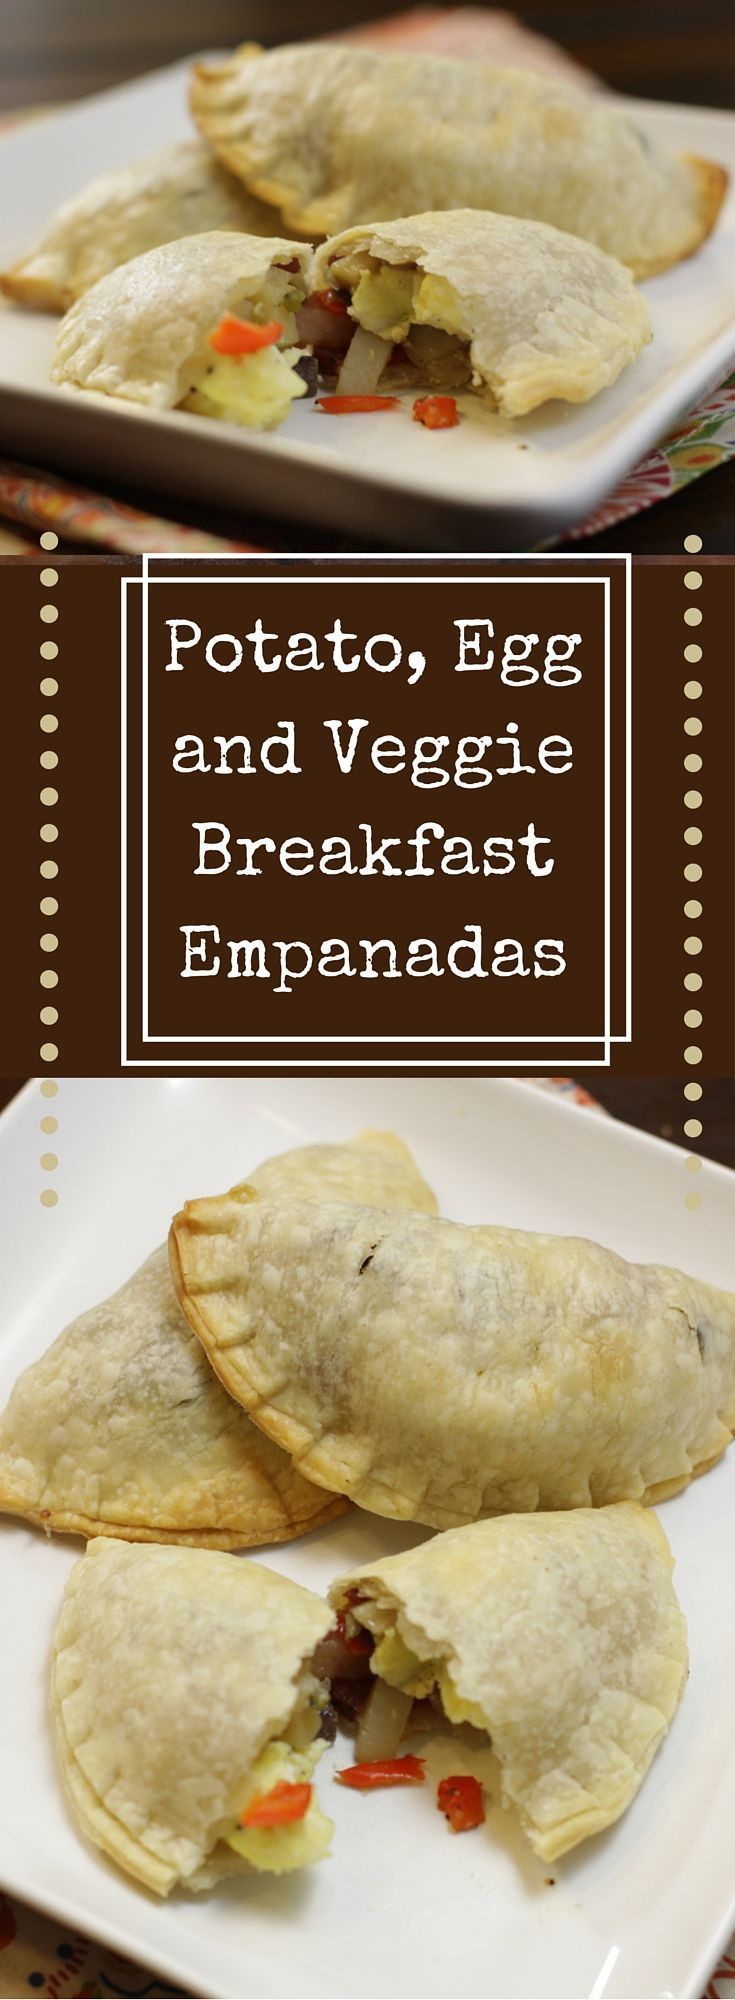 These Potato, Egg and Veggie Breakfast Empanadas are SO good. Next time, I would have doubled the recipe so it made more than 12 because I really want to eat some more of them. Guess we'll have to make it again soon!